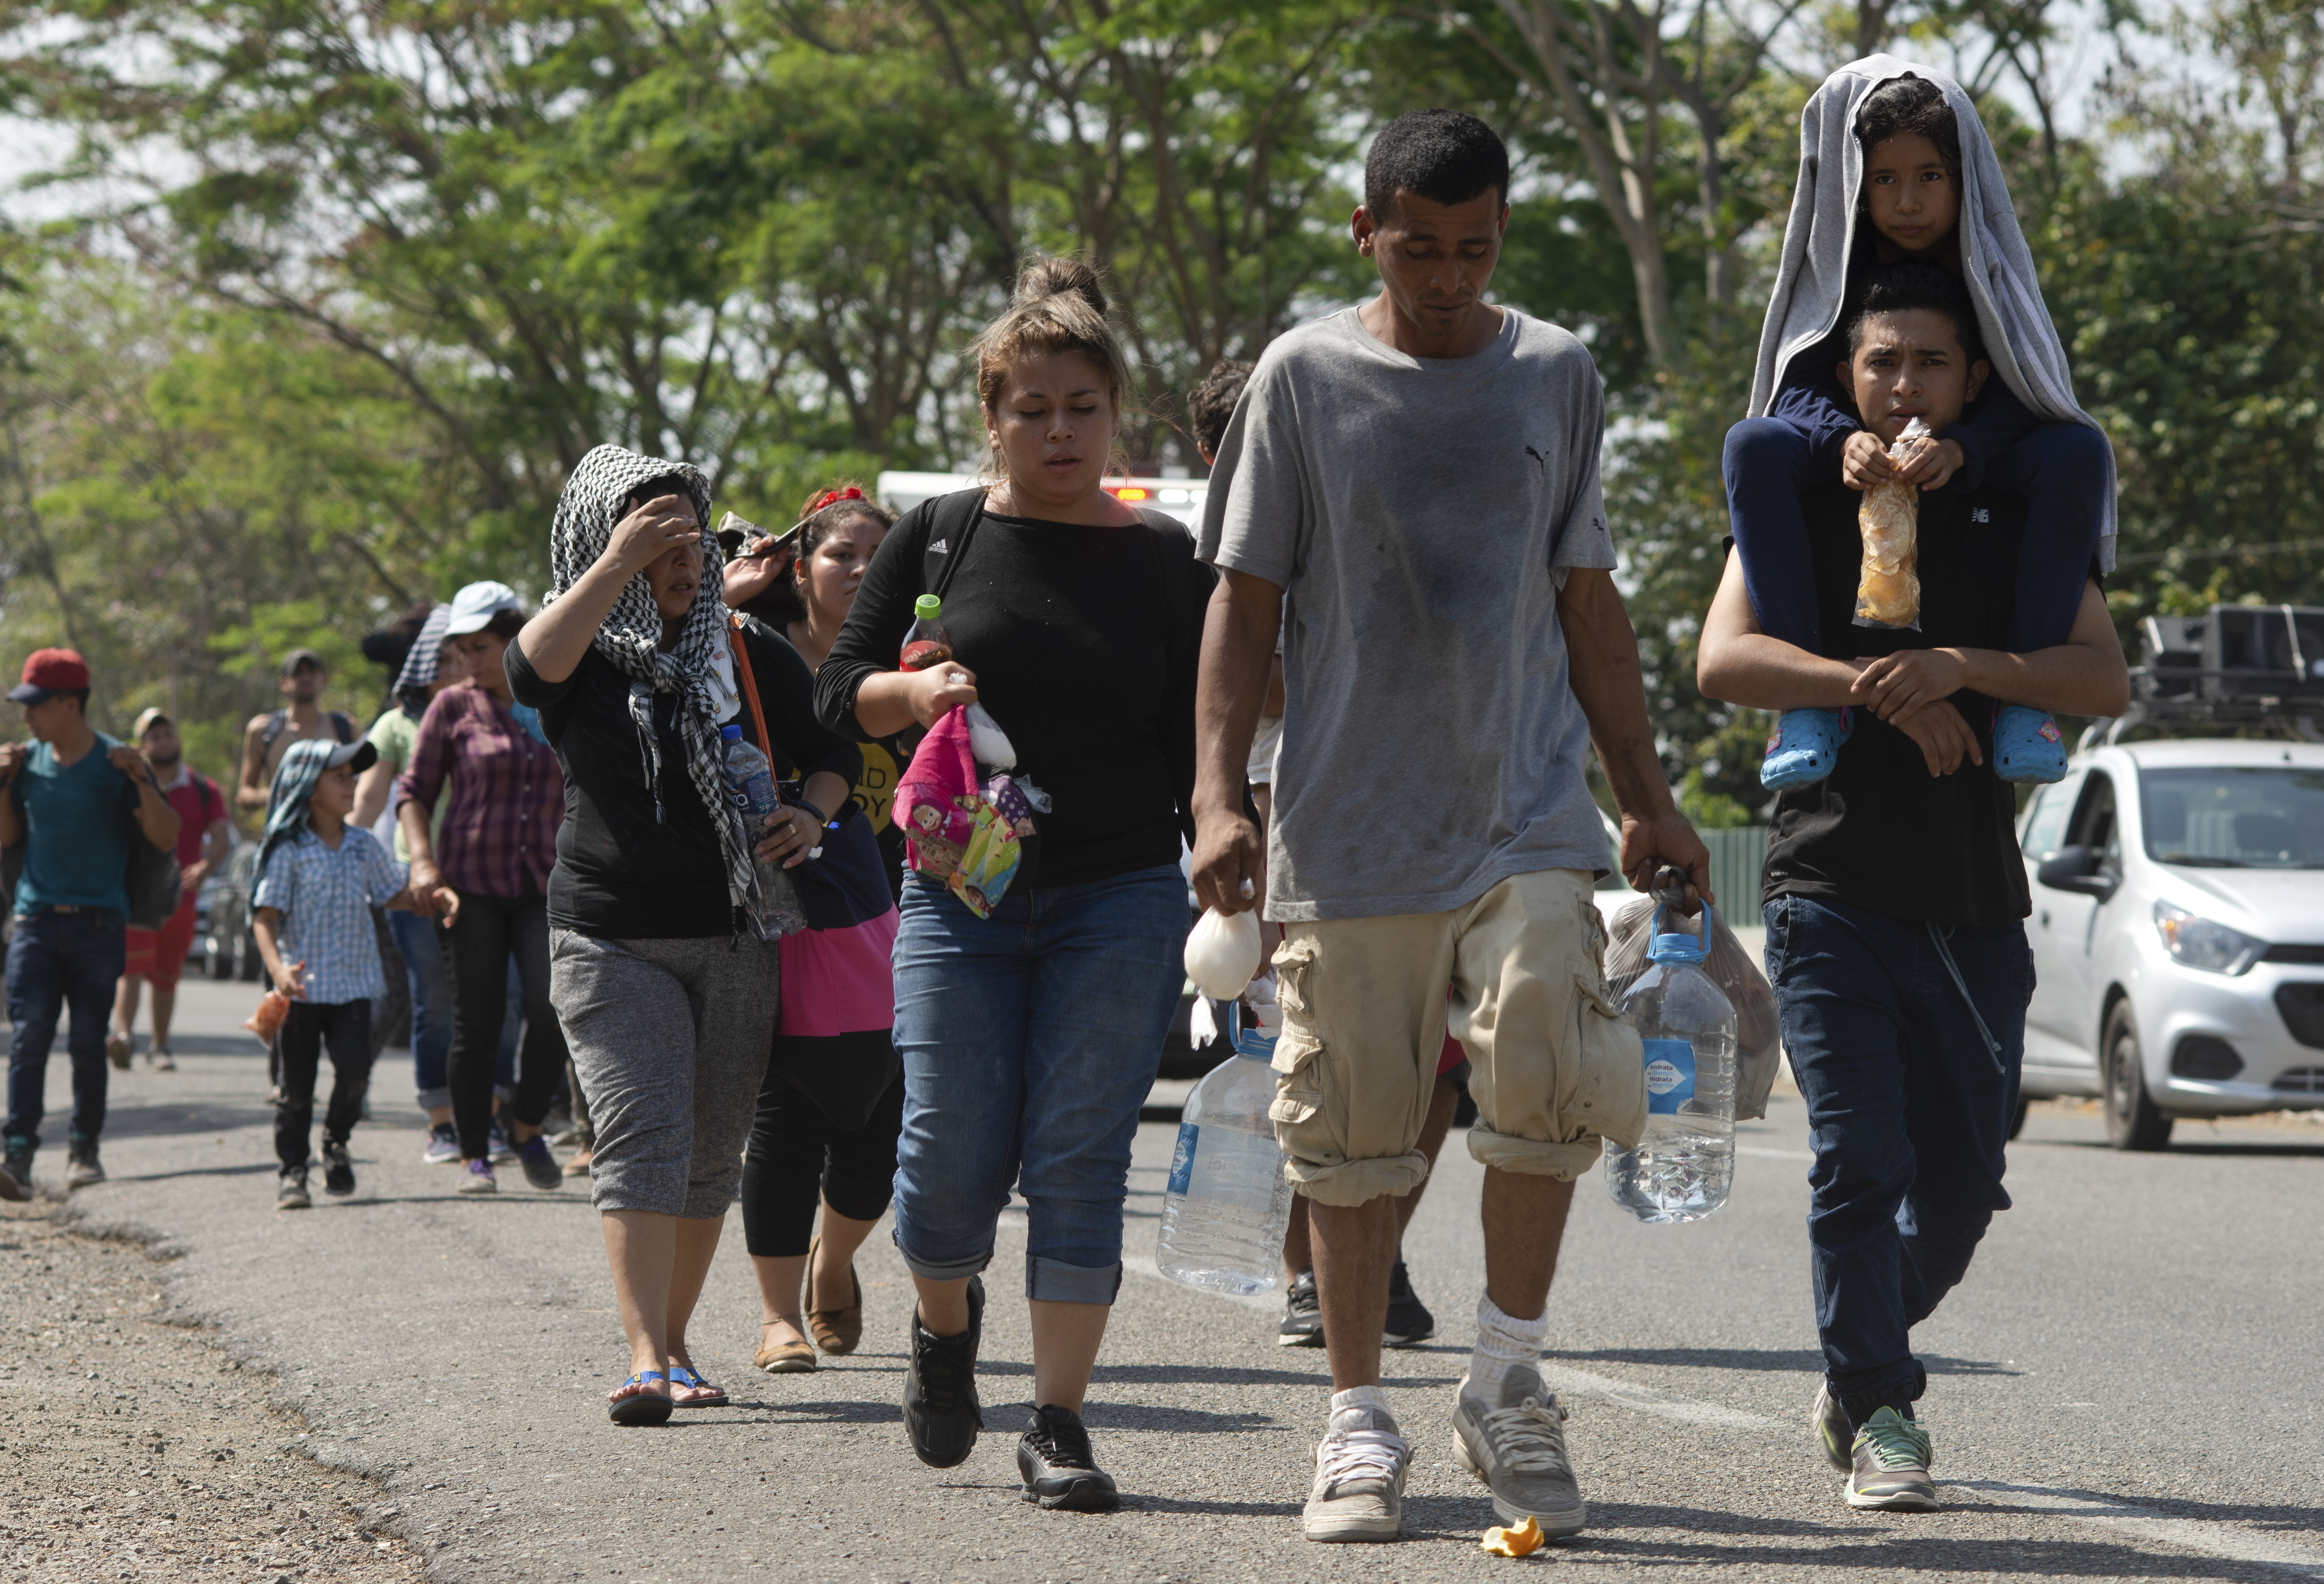 Mexico braces for 'mother of all caravans'